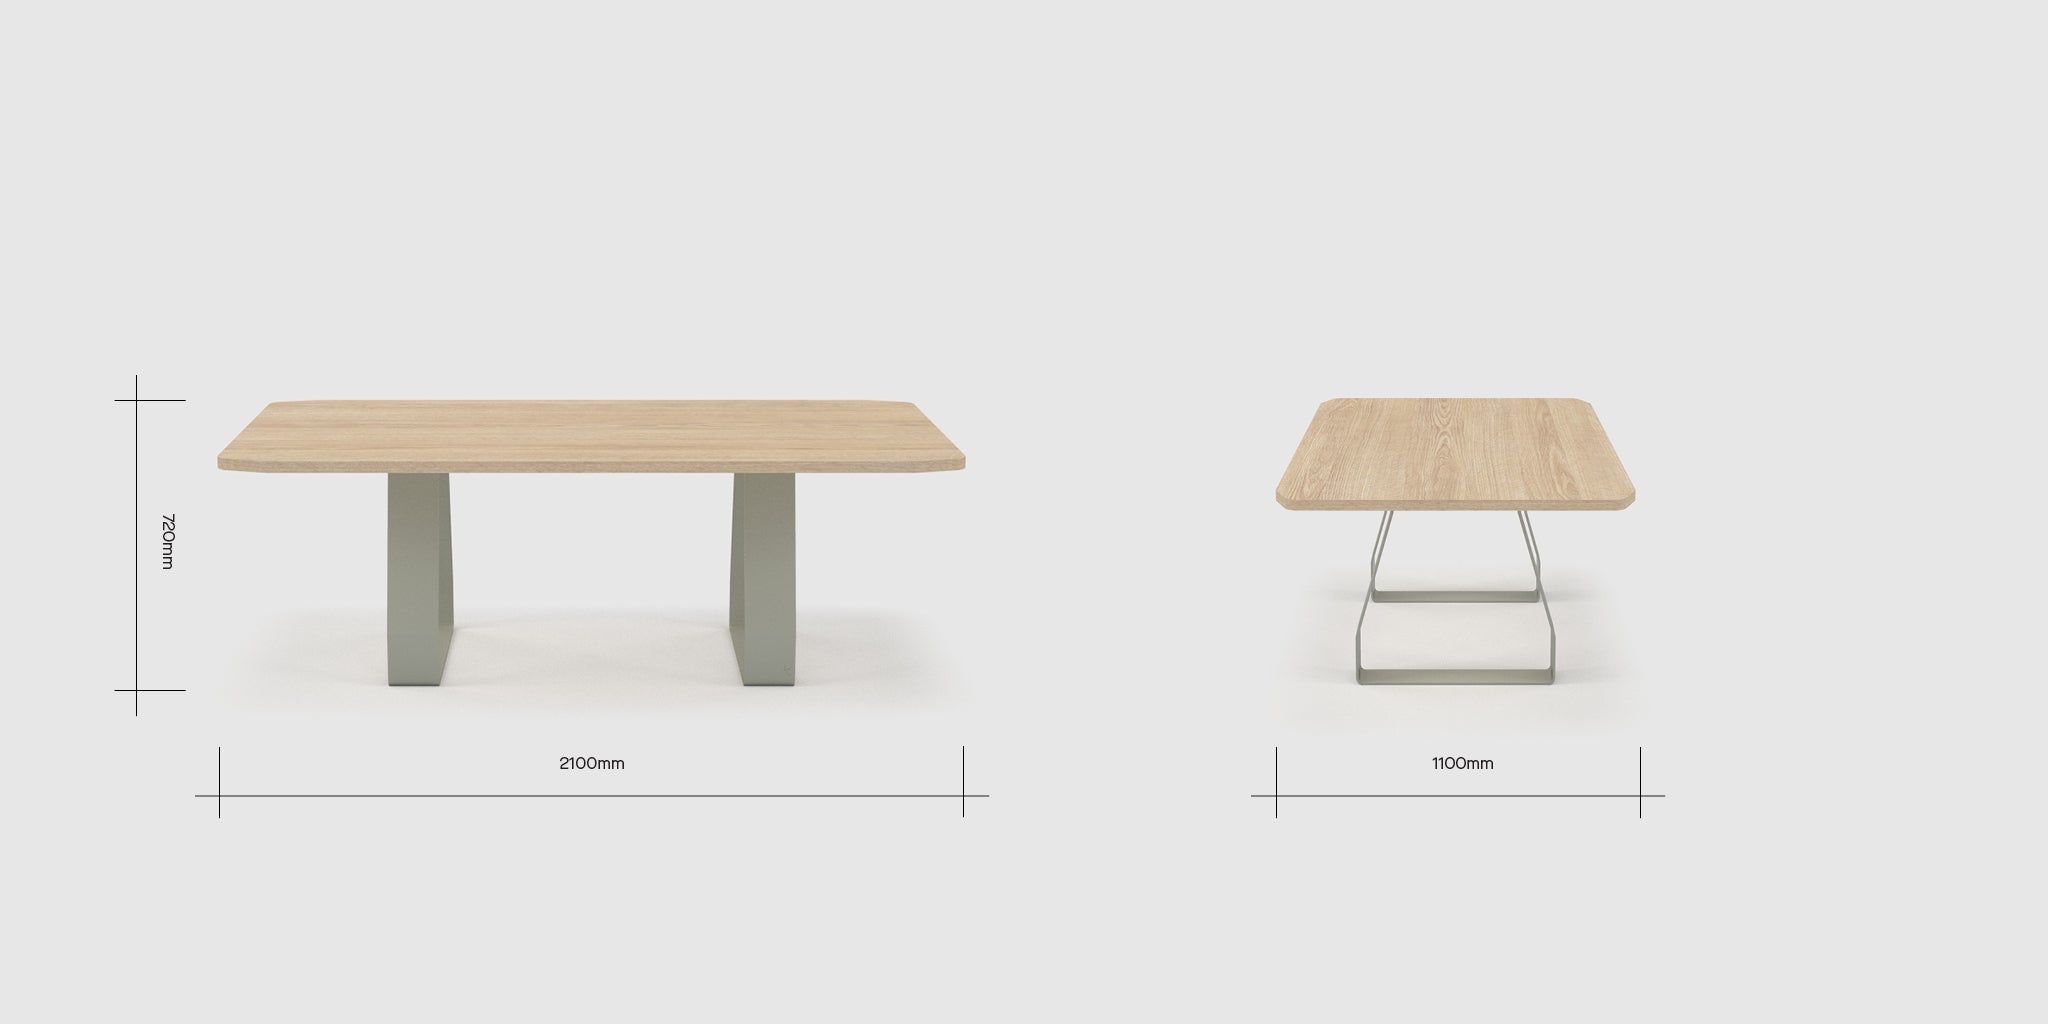 Stirrup 6 Person Table Dimensions